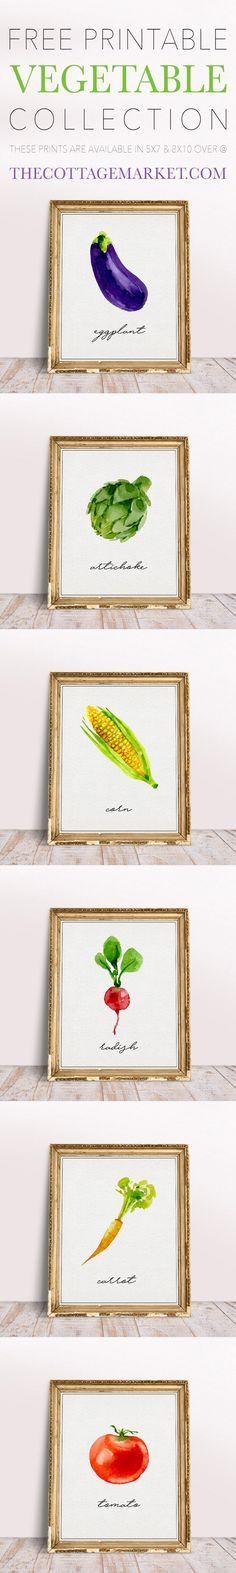 This Set of 6 Free Printable Vegetable Collection is waiting to hang out on your wall!